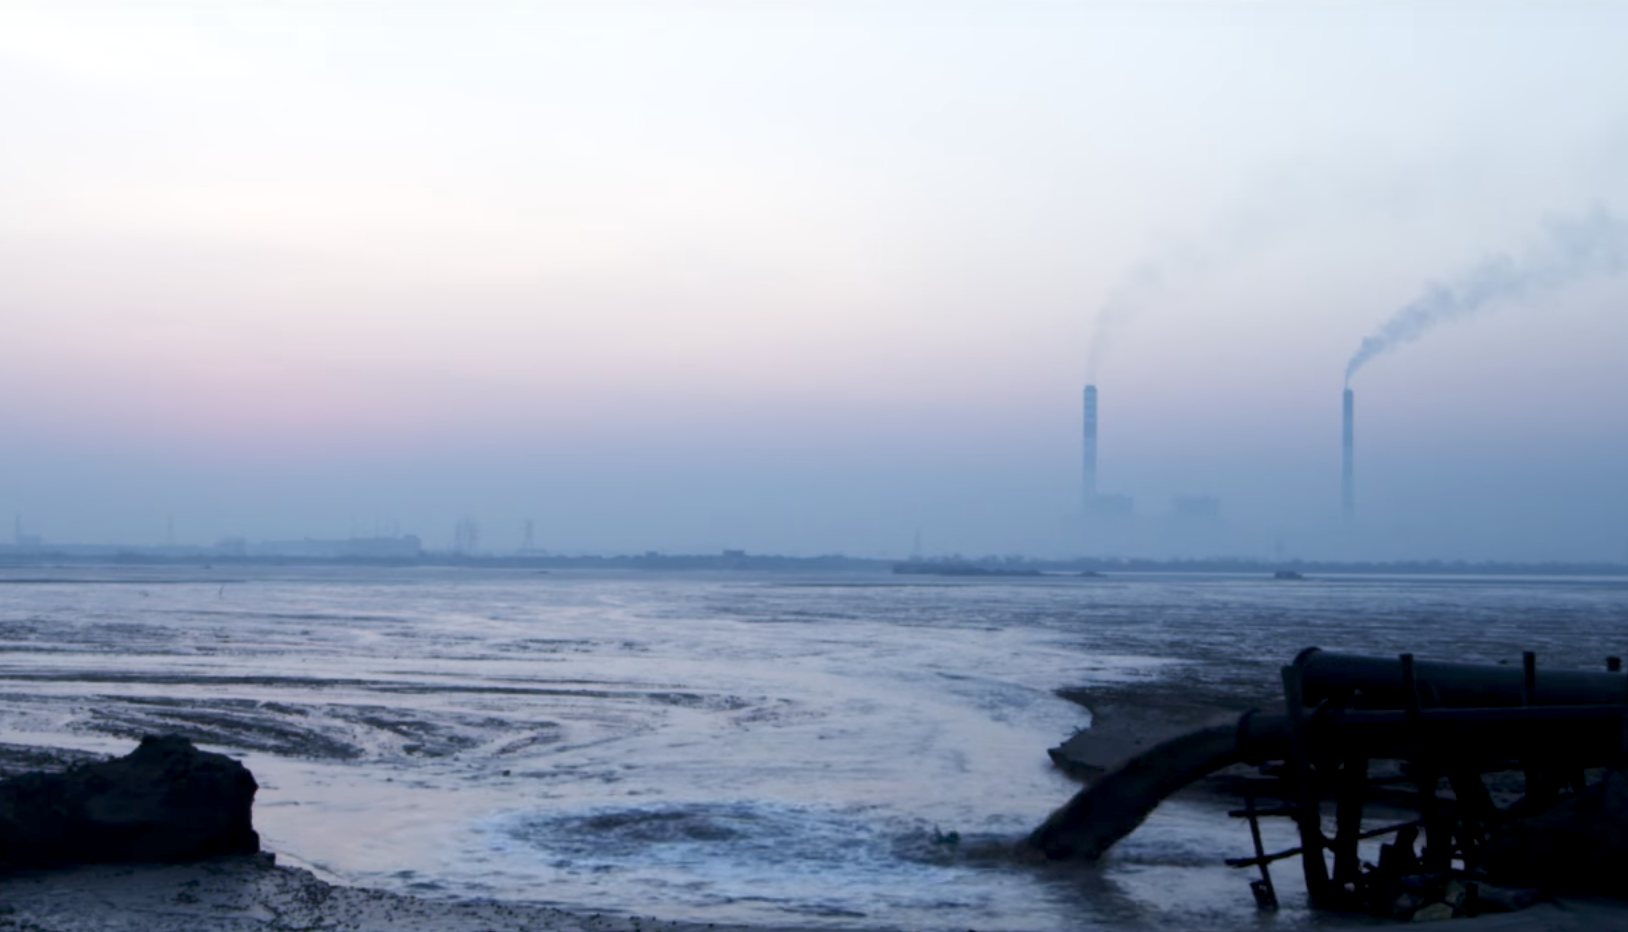 A view of the Seppakkam ash pond, with chimney stacks seen on the horizon. Source: YouTube